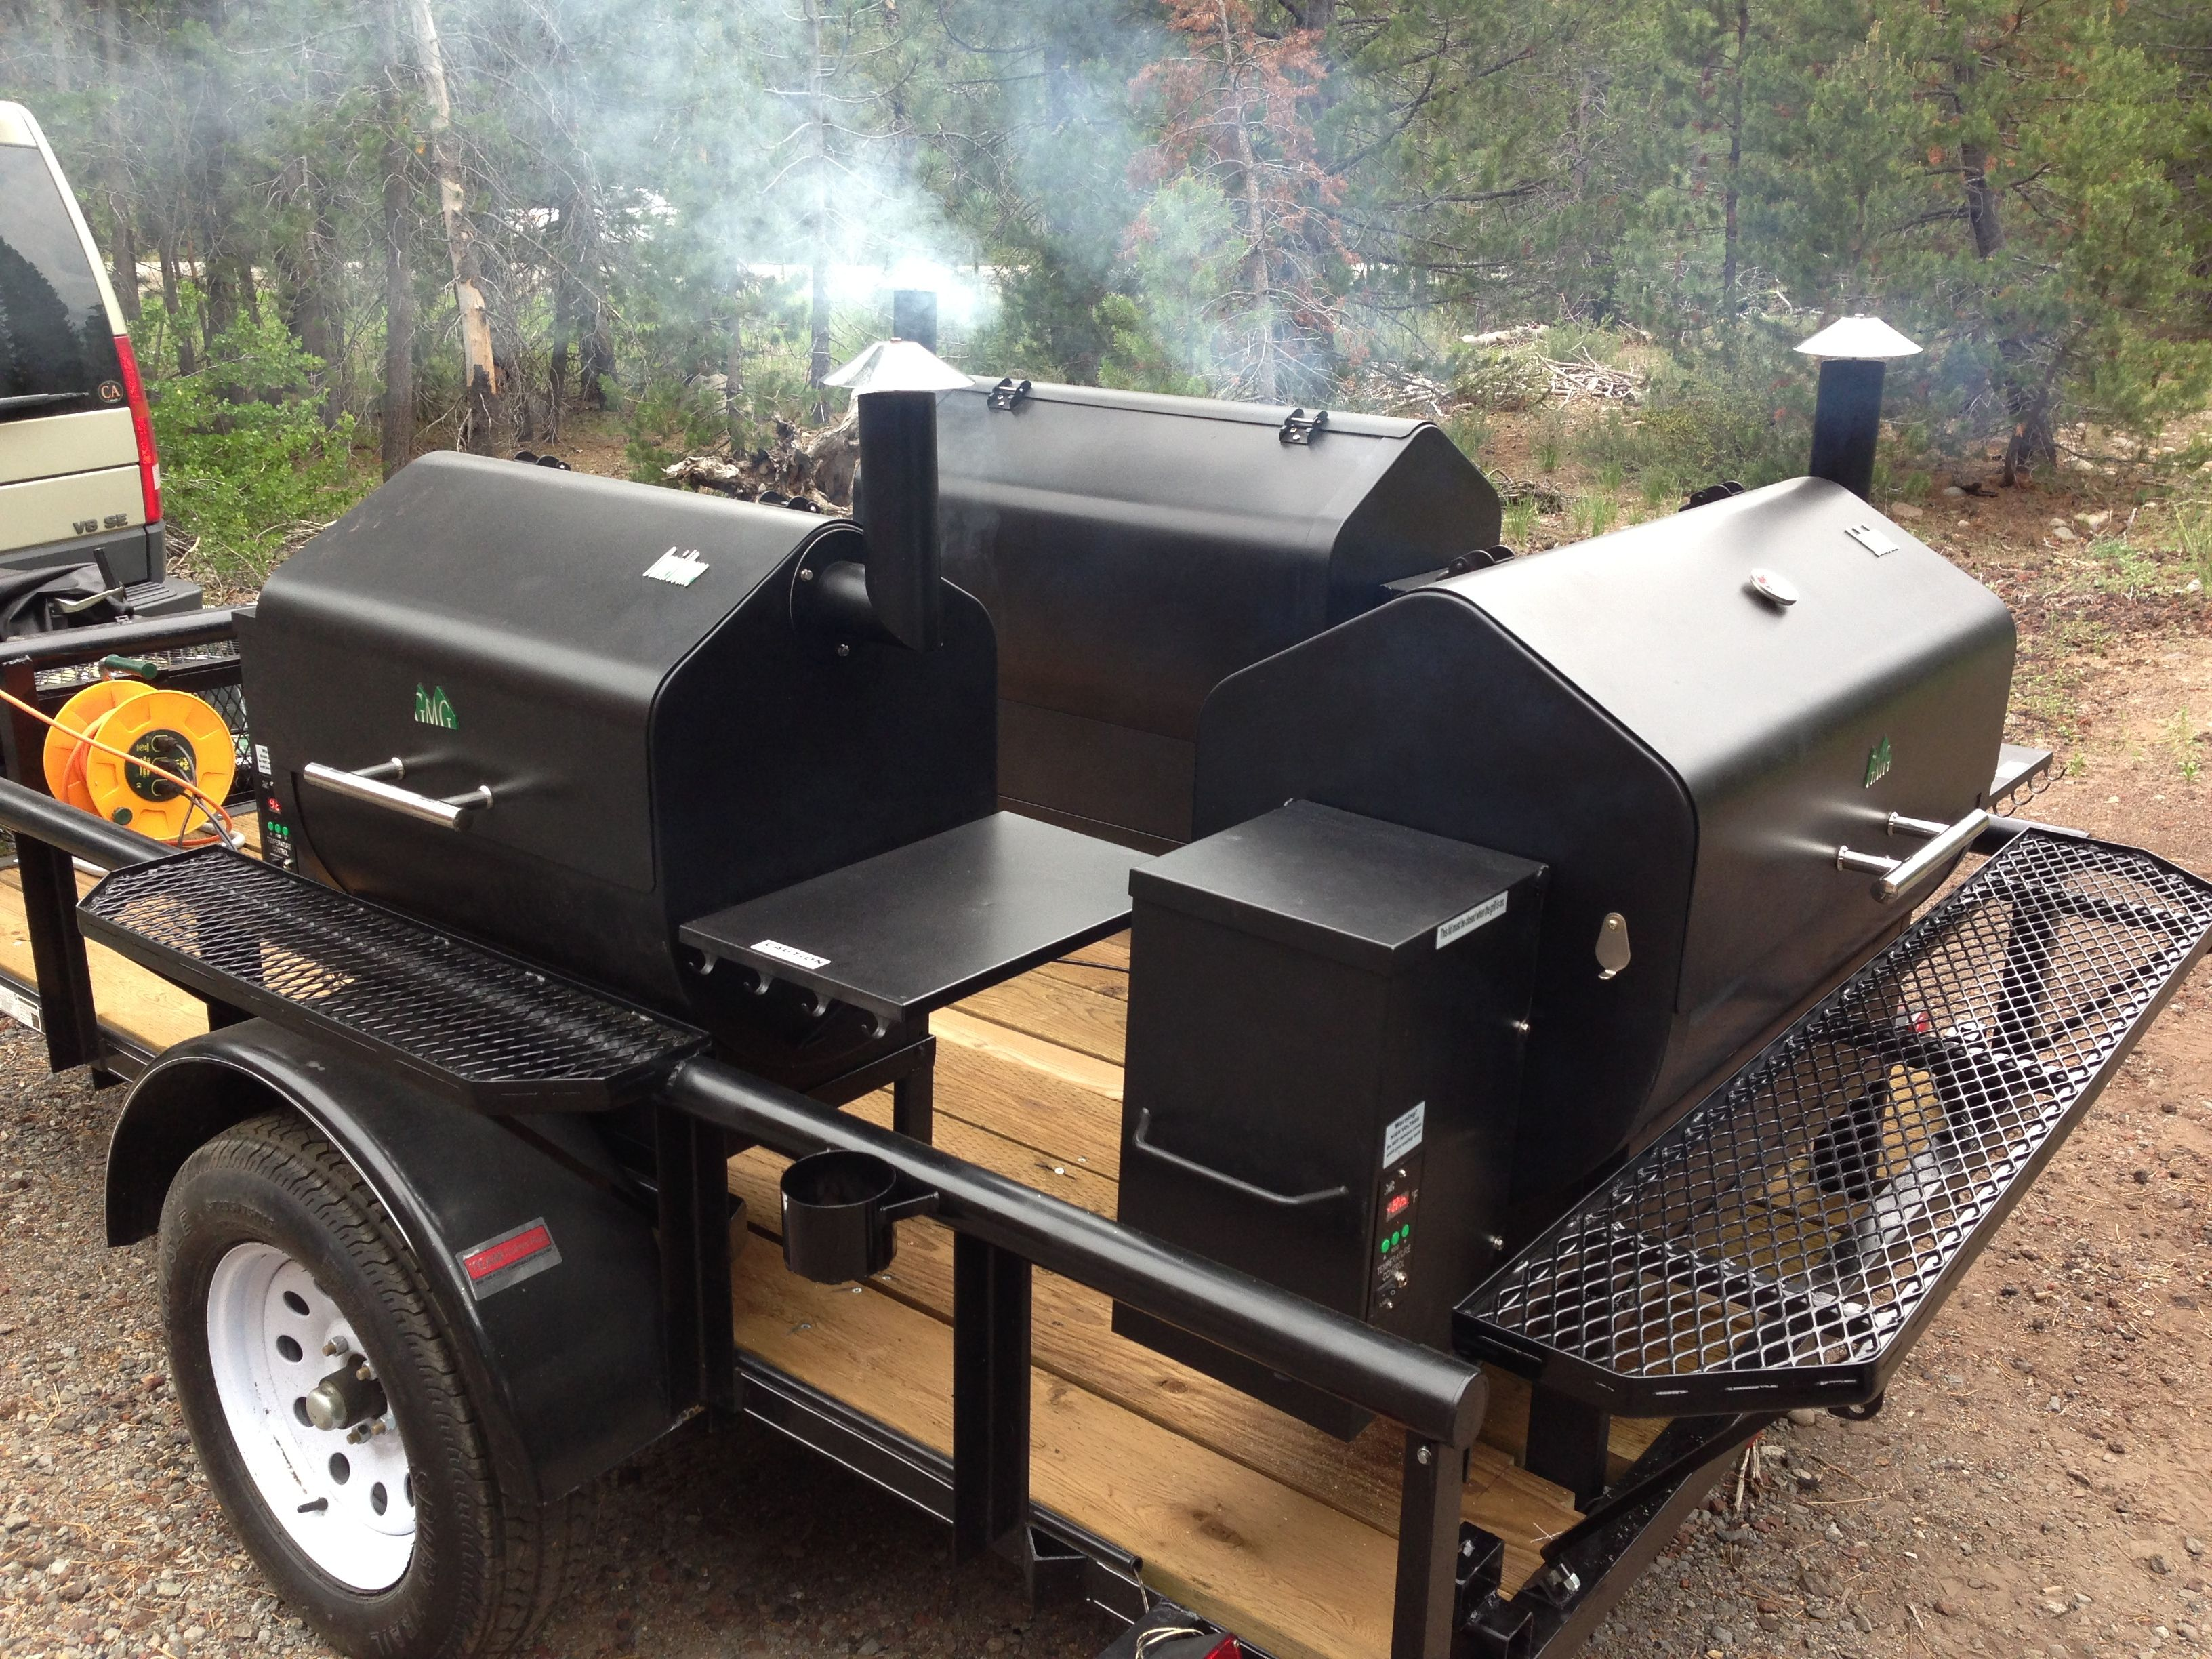 Tahoe pellet grills and big blue q s new bbq trailer